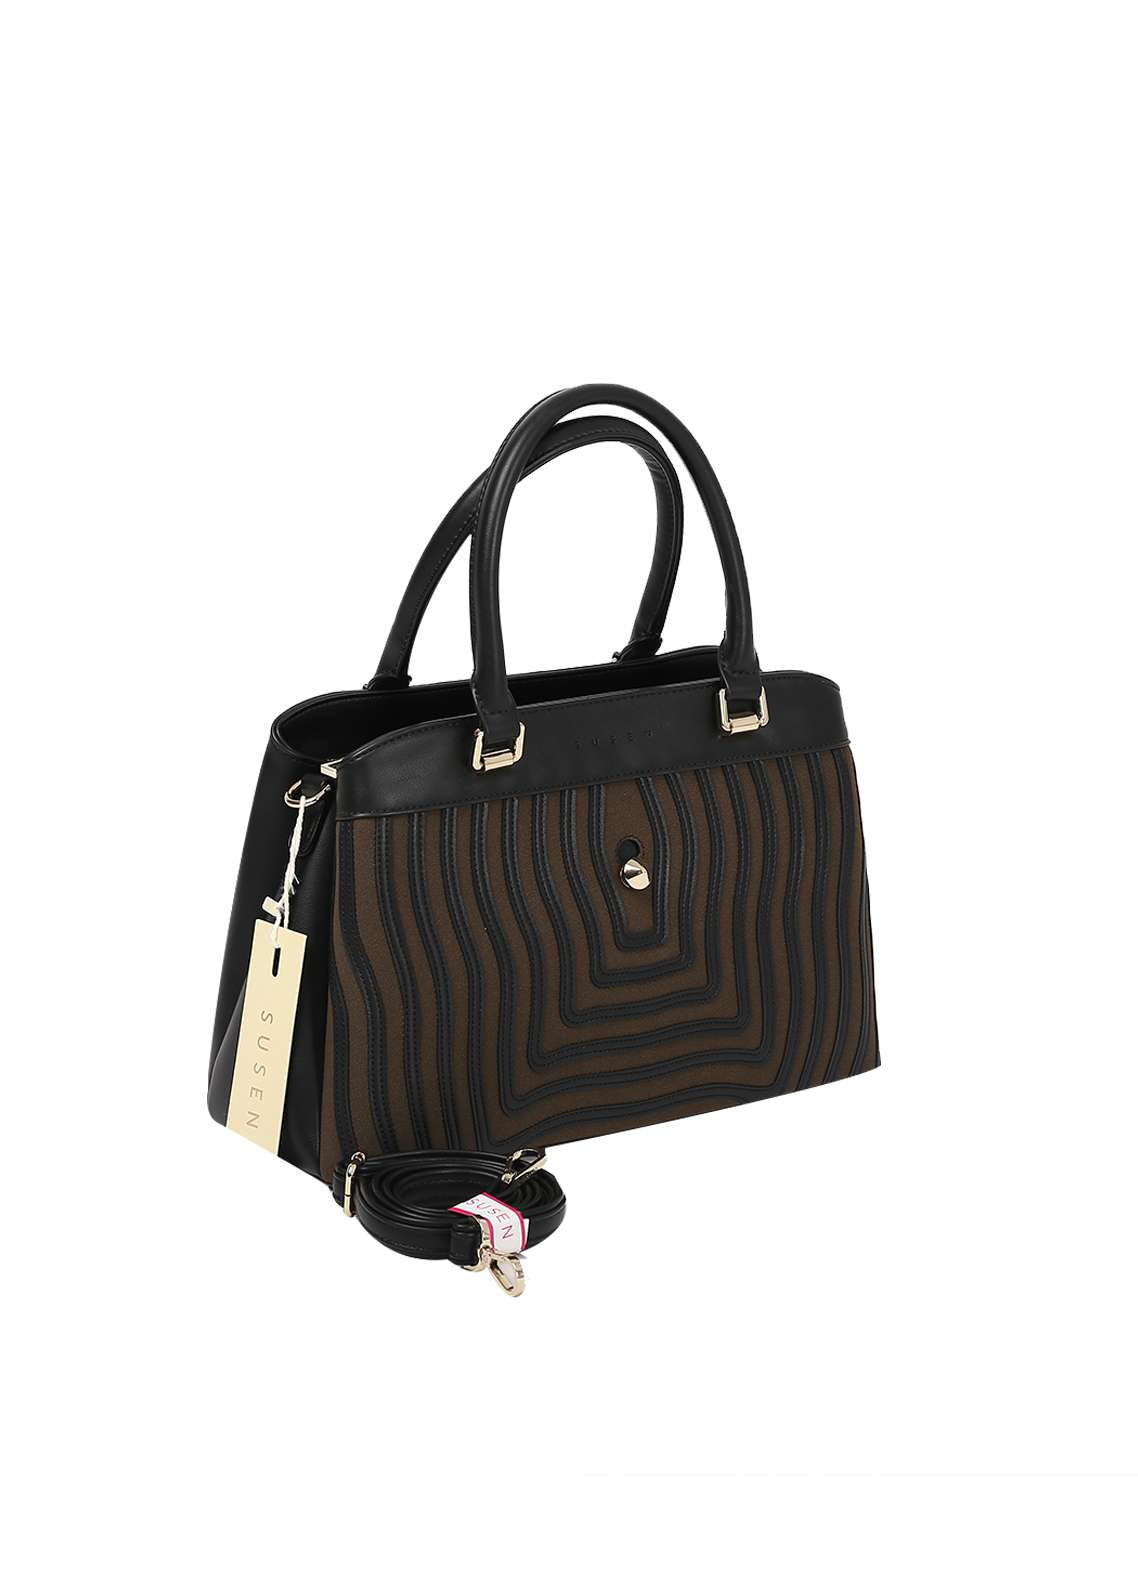 Susen PU Leather Satchels Bag for Women - Black with Stripes